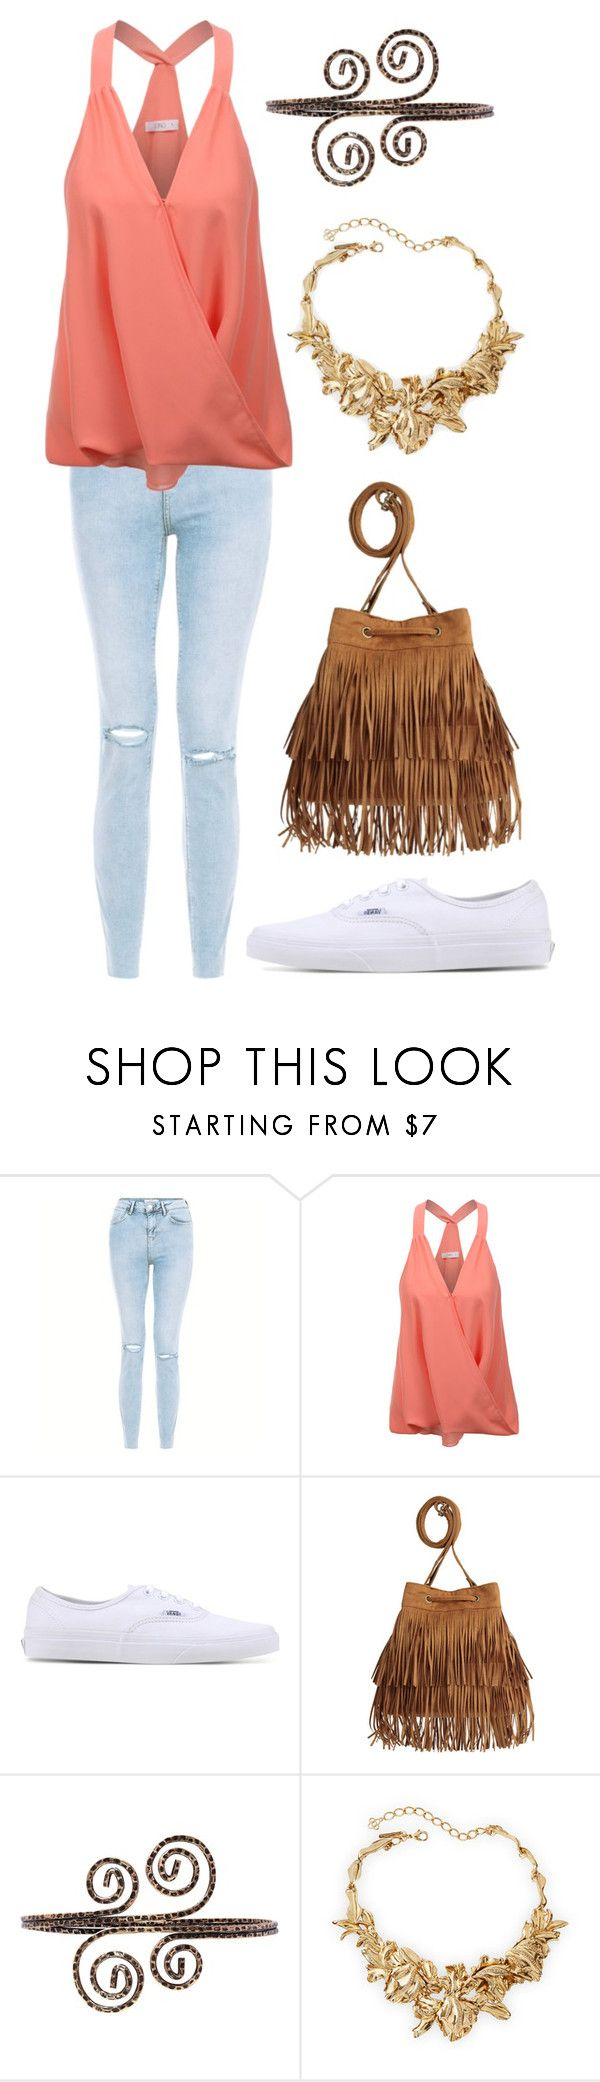 """""""Coral and Gold Swirls"""" by staysaneinsideinsanity ❤ liked on Polyvore featuring New Look, LE3NO, Vans and Oscar de la Renta"""